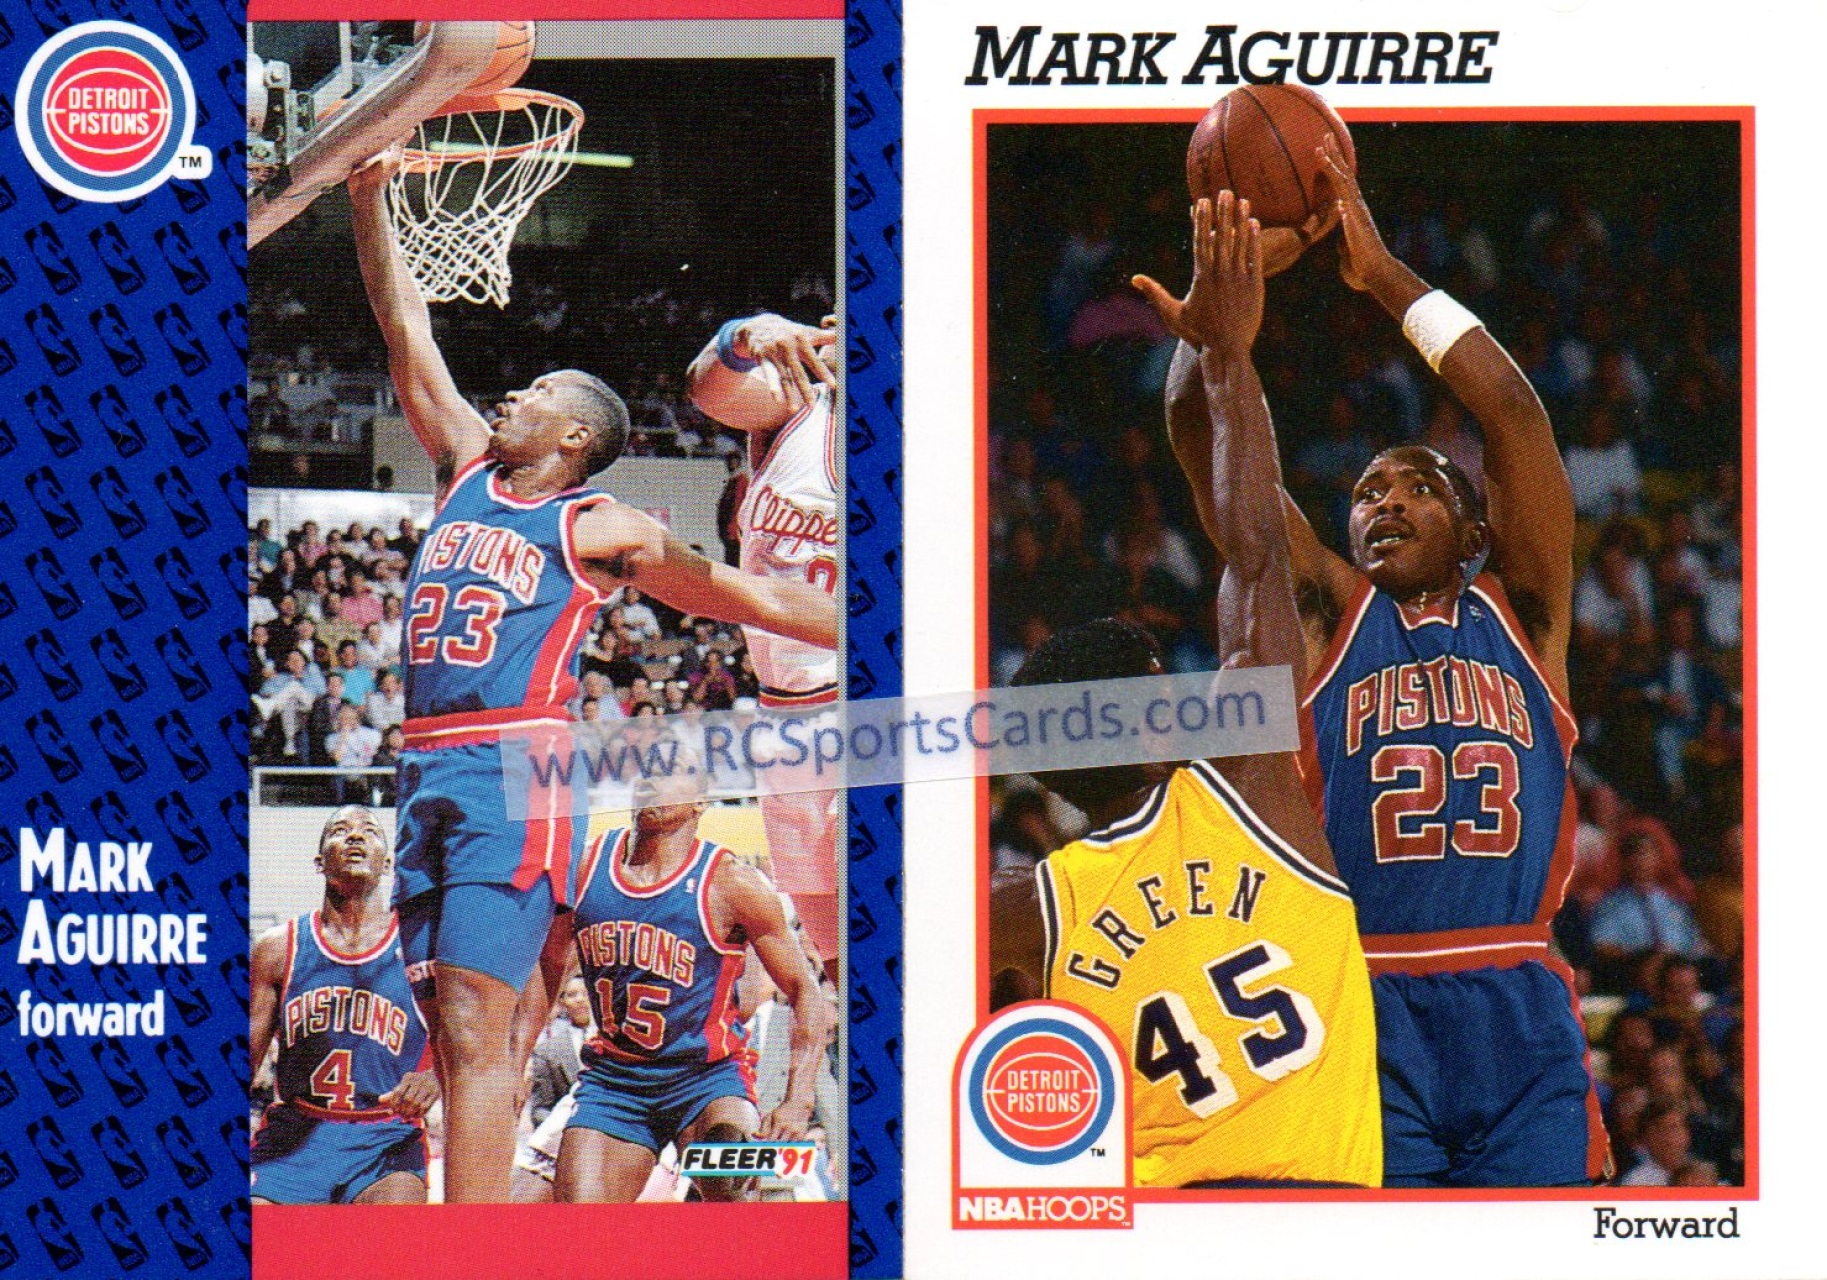 1988 1991 Detroit Pistons Basketball Cards Basketball Cards by